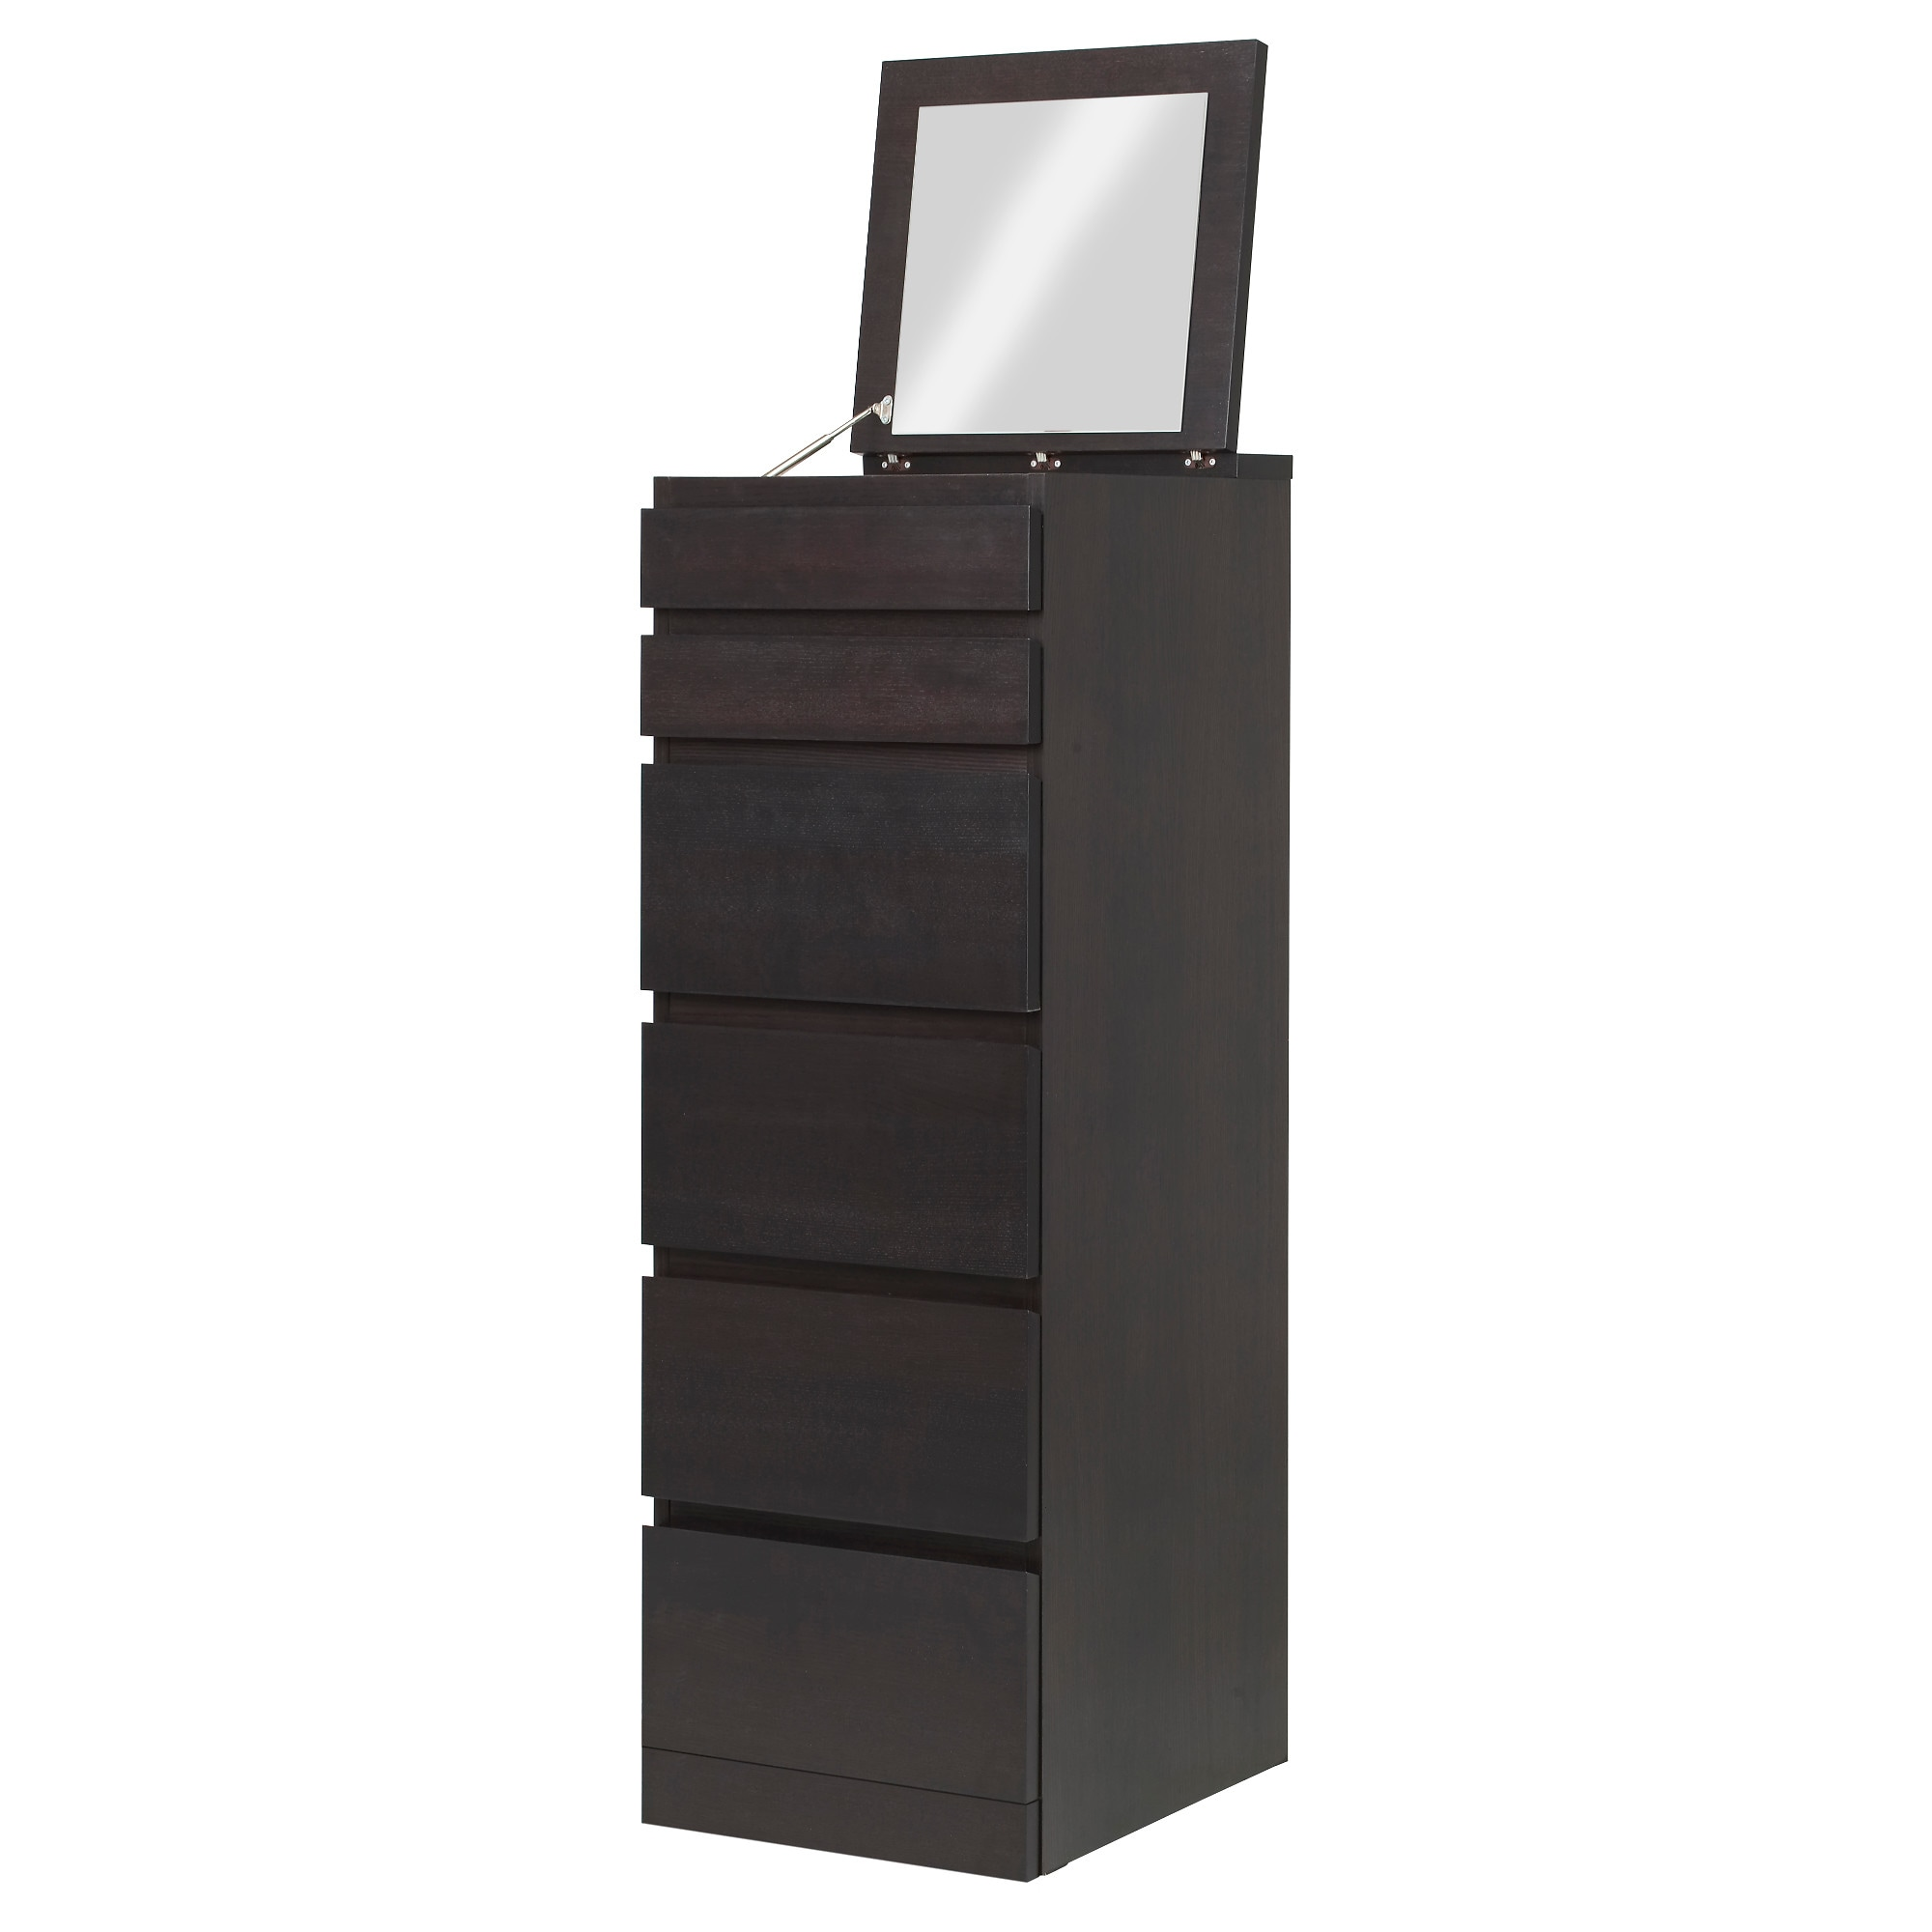 MALM 6 Drawer Chest   Black Brown/mirror Glass   IKEA